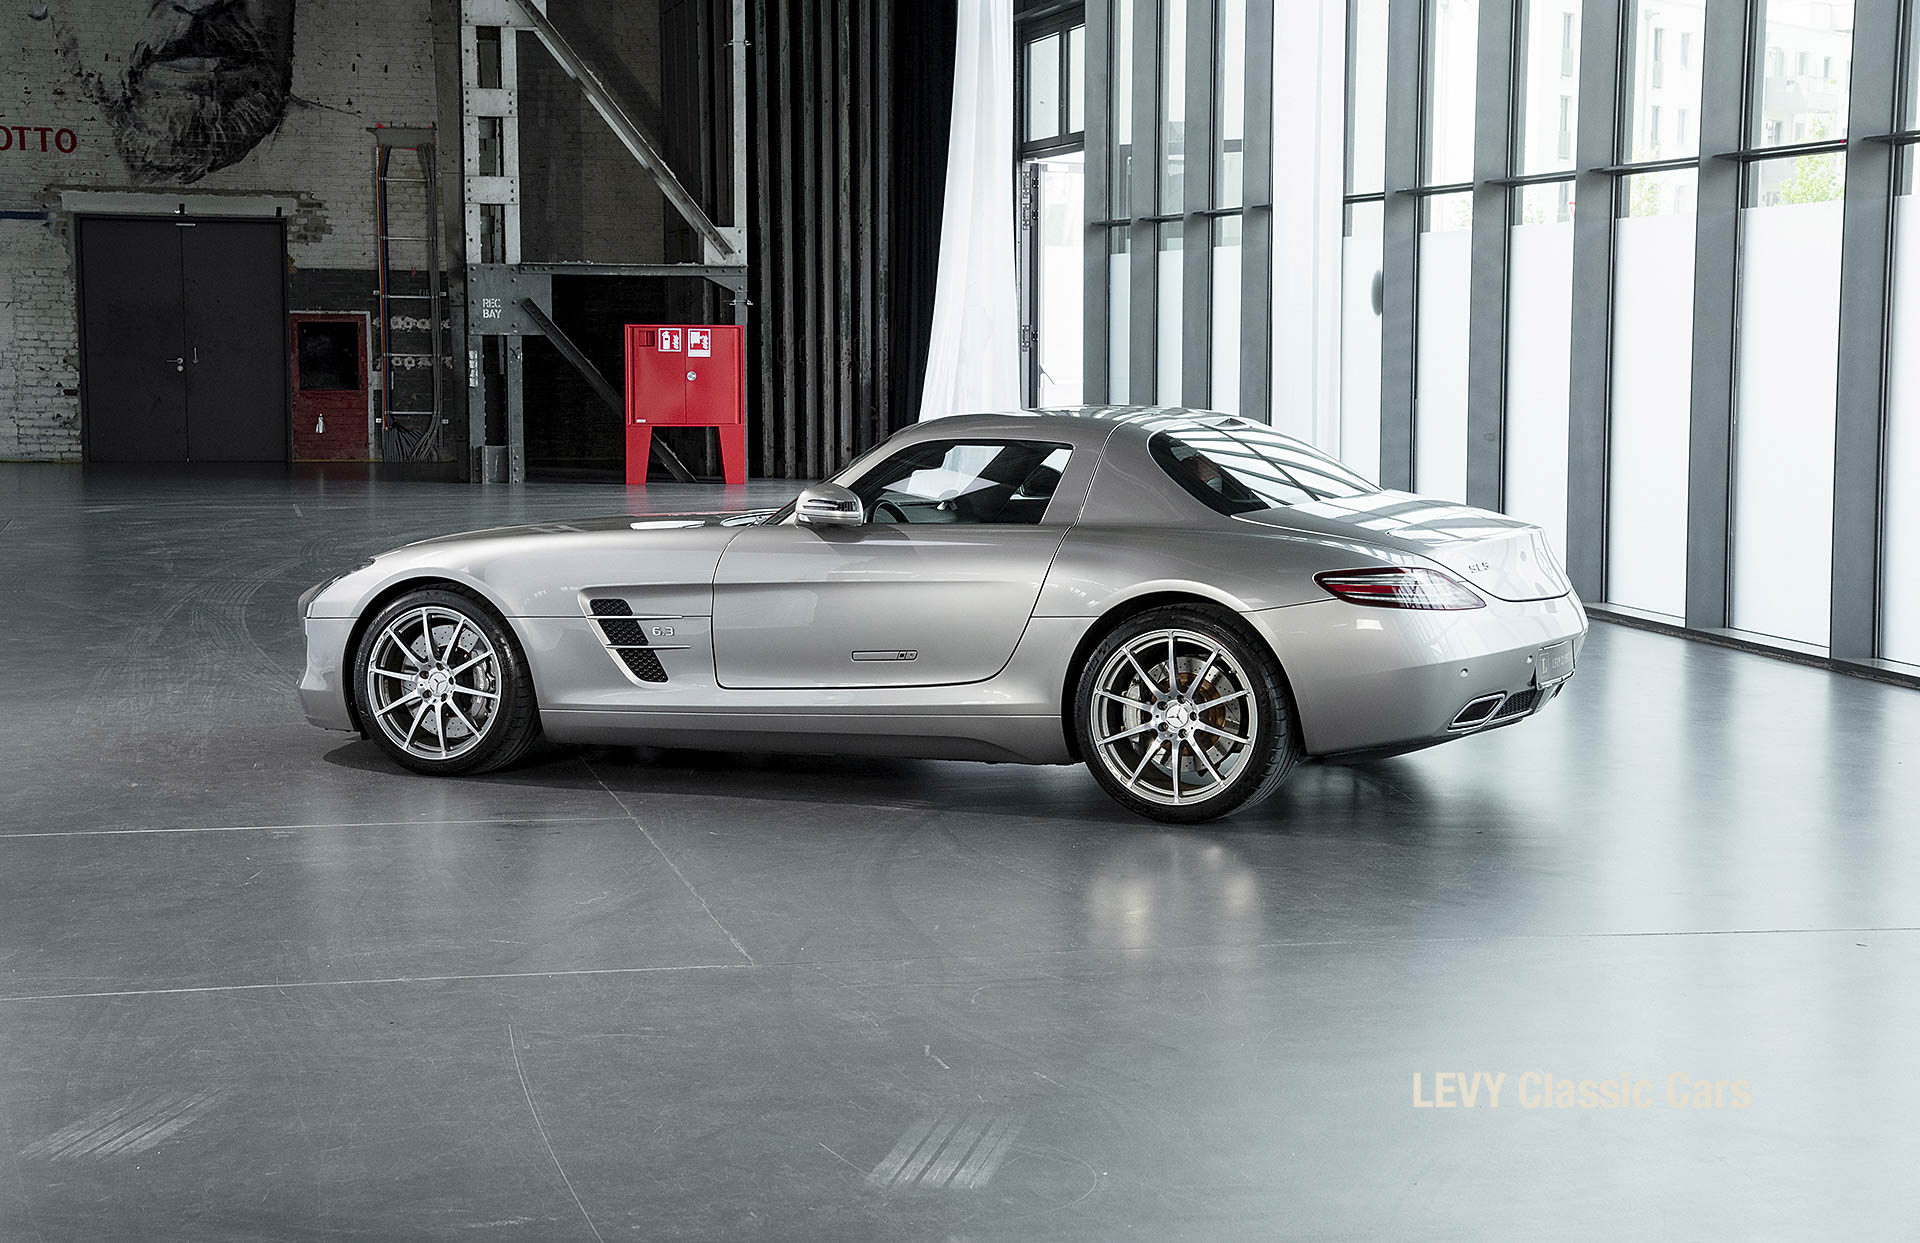 MB SLS AMG 6,3 Coupe 05633 104